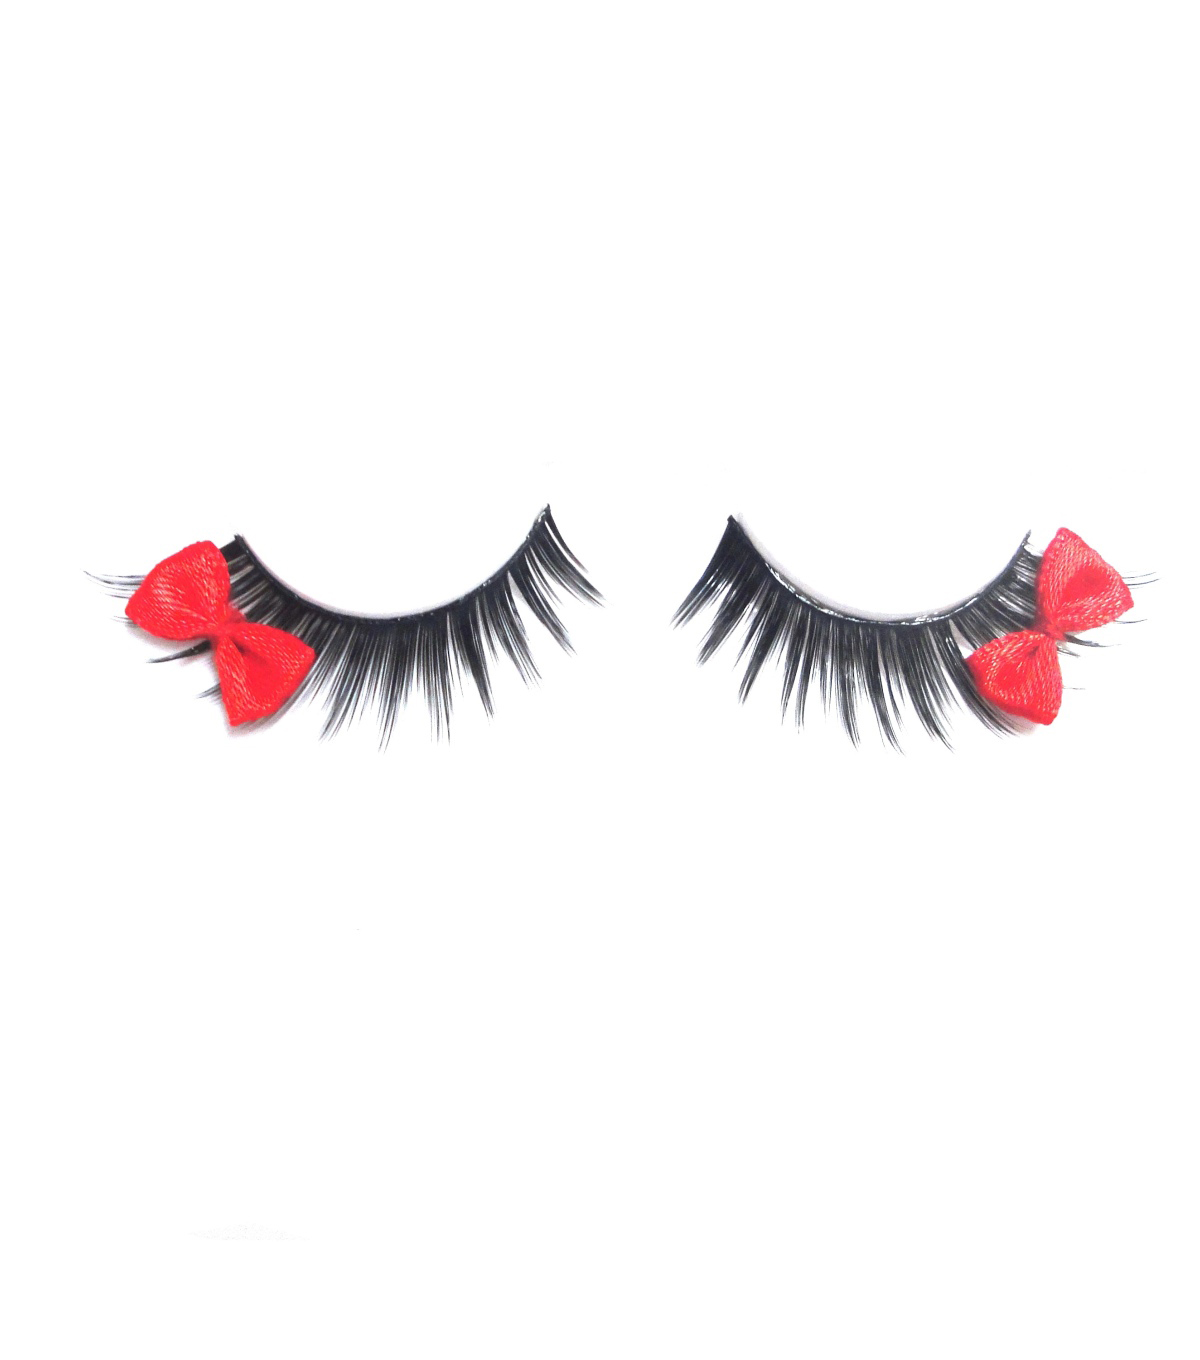 Maker\u0027s Halloween Black Eyelashes with Red Bows